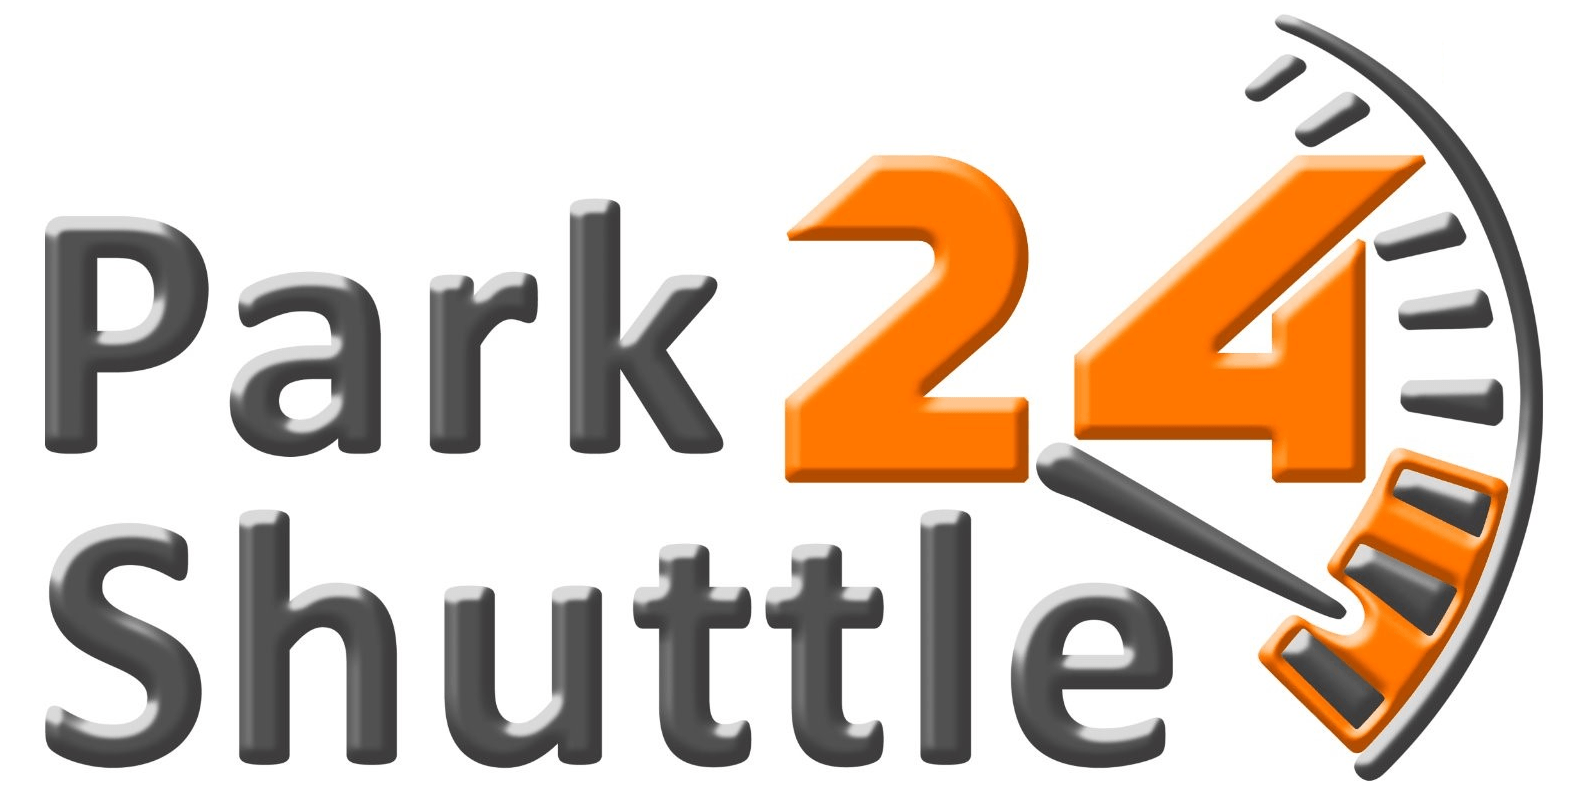 ParkShuttle24 P2